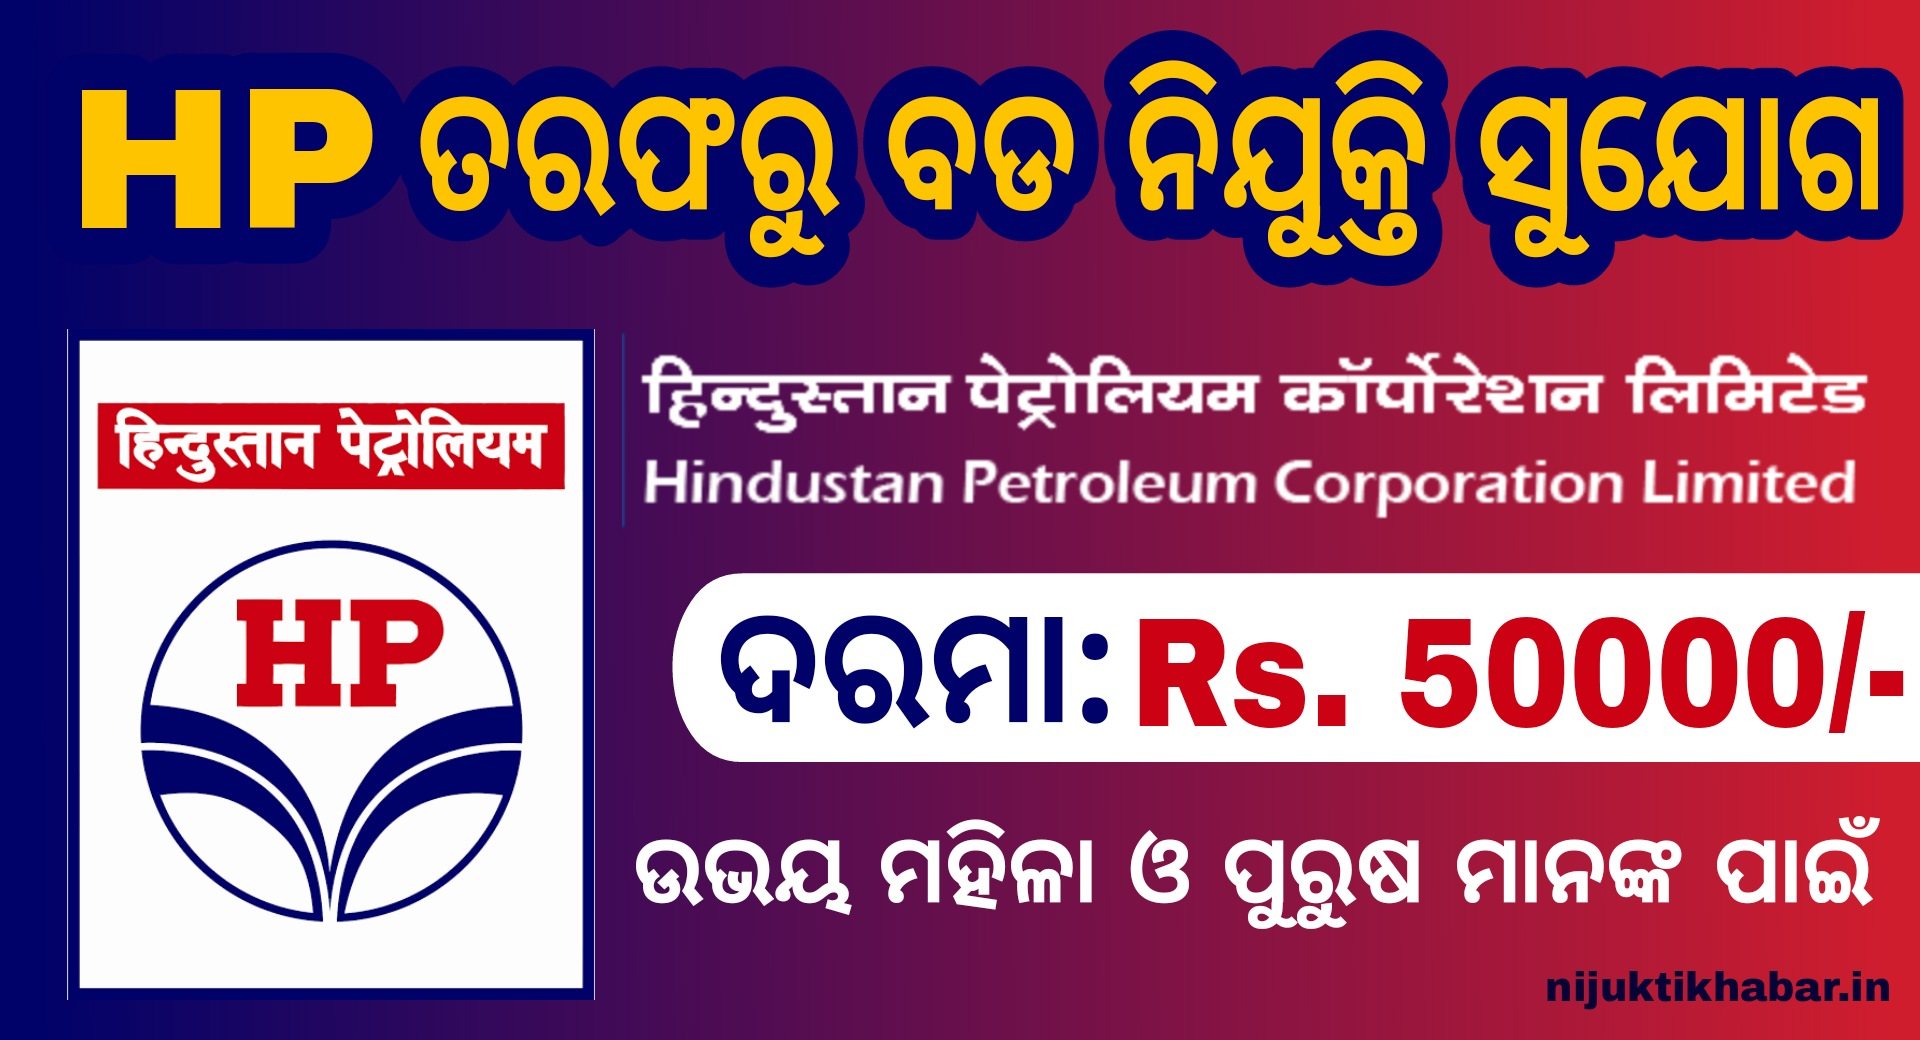 HPCL Engineer Recruitment 2021 – Apply Now for 200 Posts